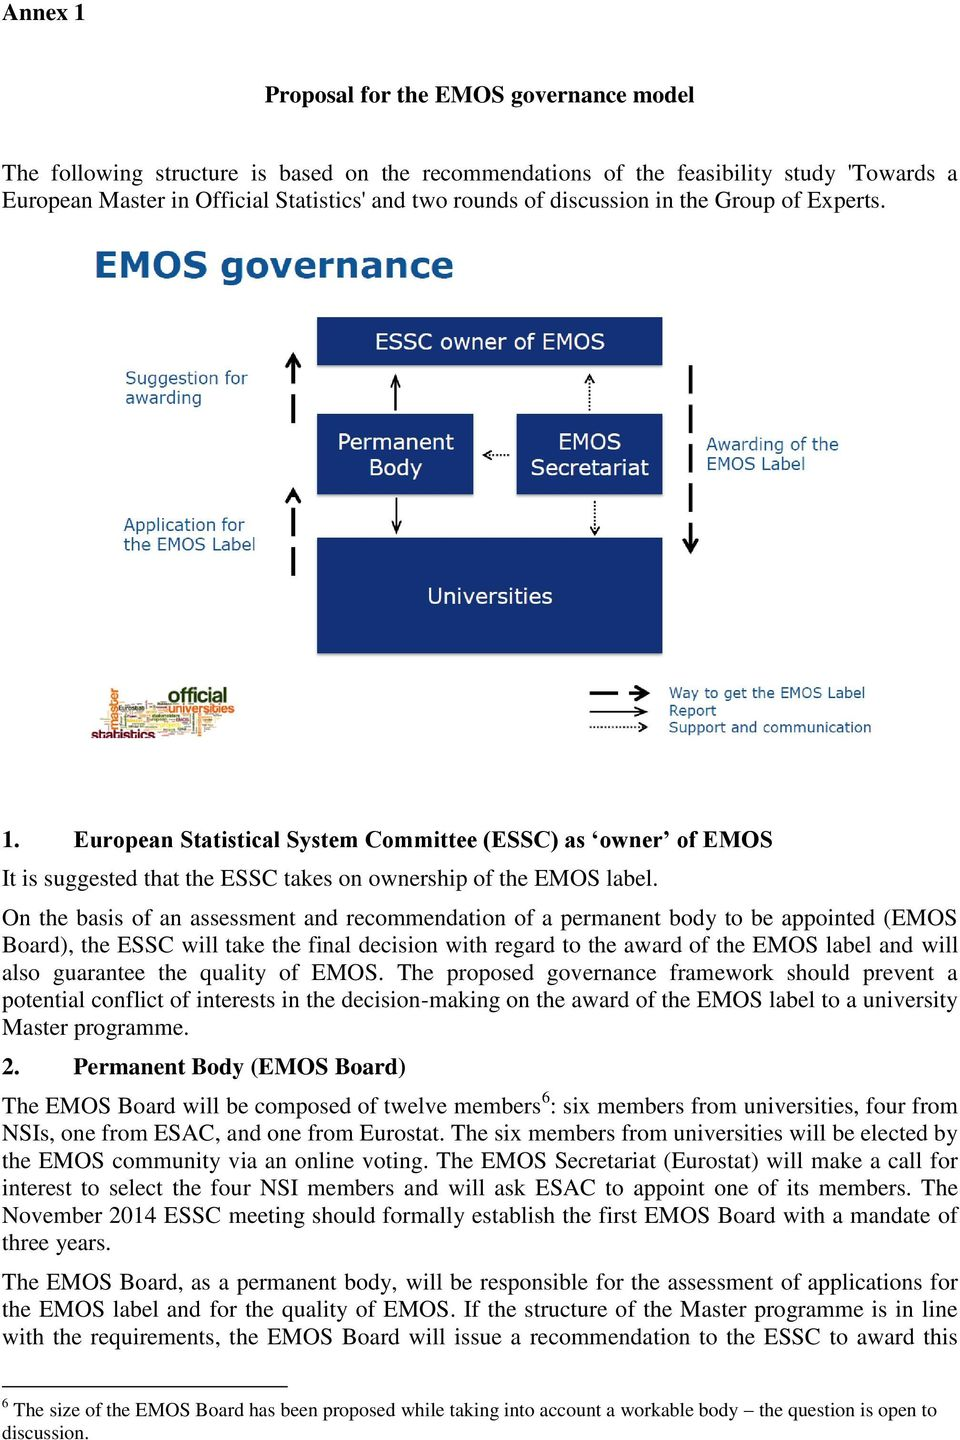 On the basis of an assessment and recommendation of a permanent body to be appointed (EMOS Board), the ESSC will take the final decision with regard to the award of the EMOS label and will also